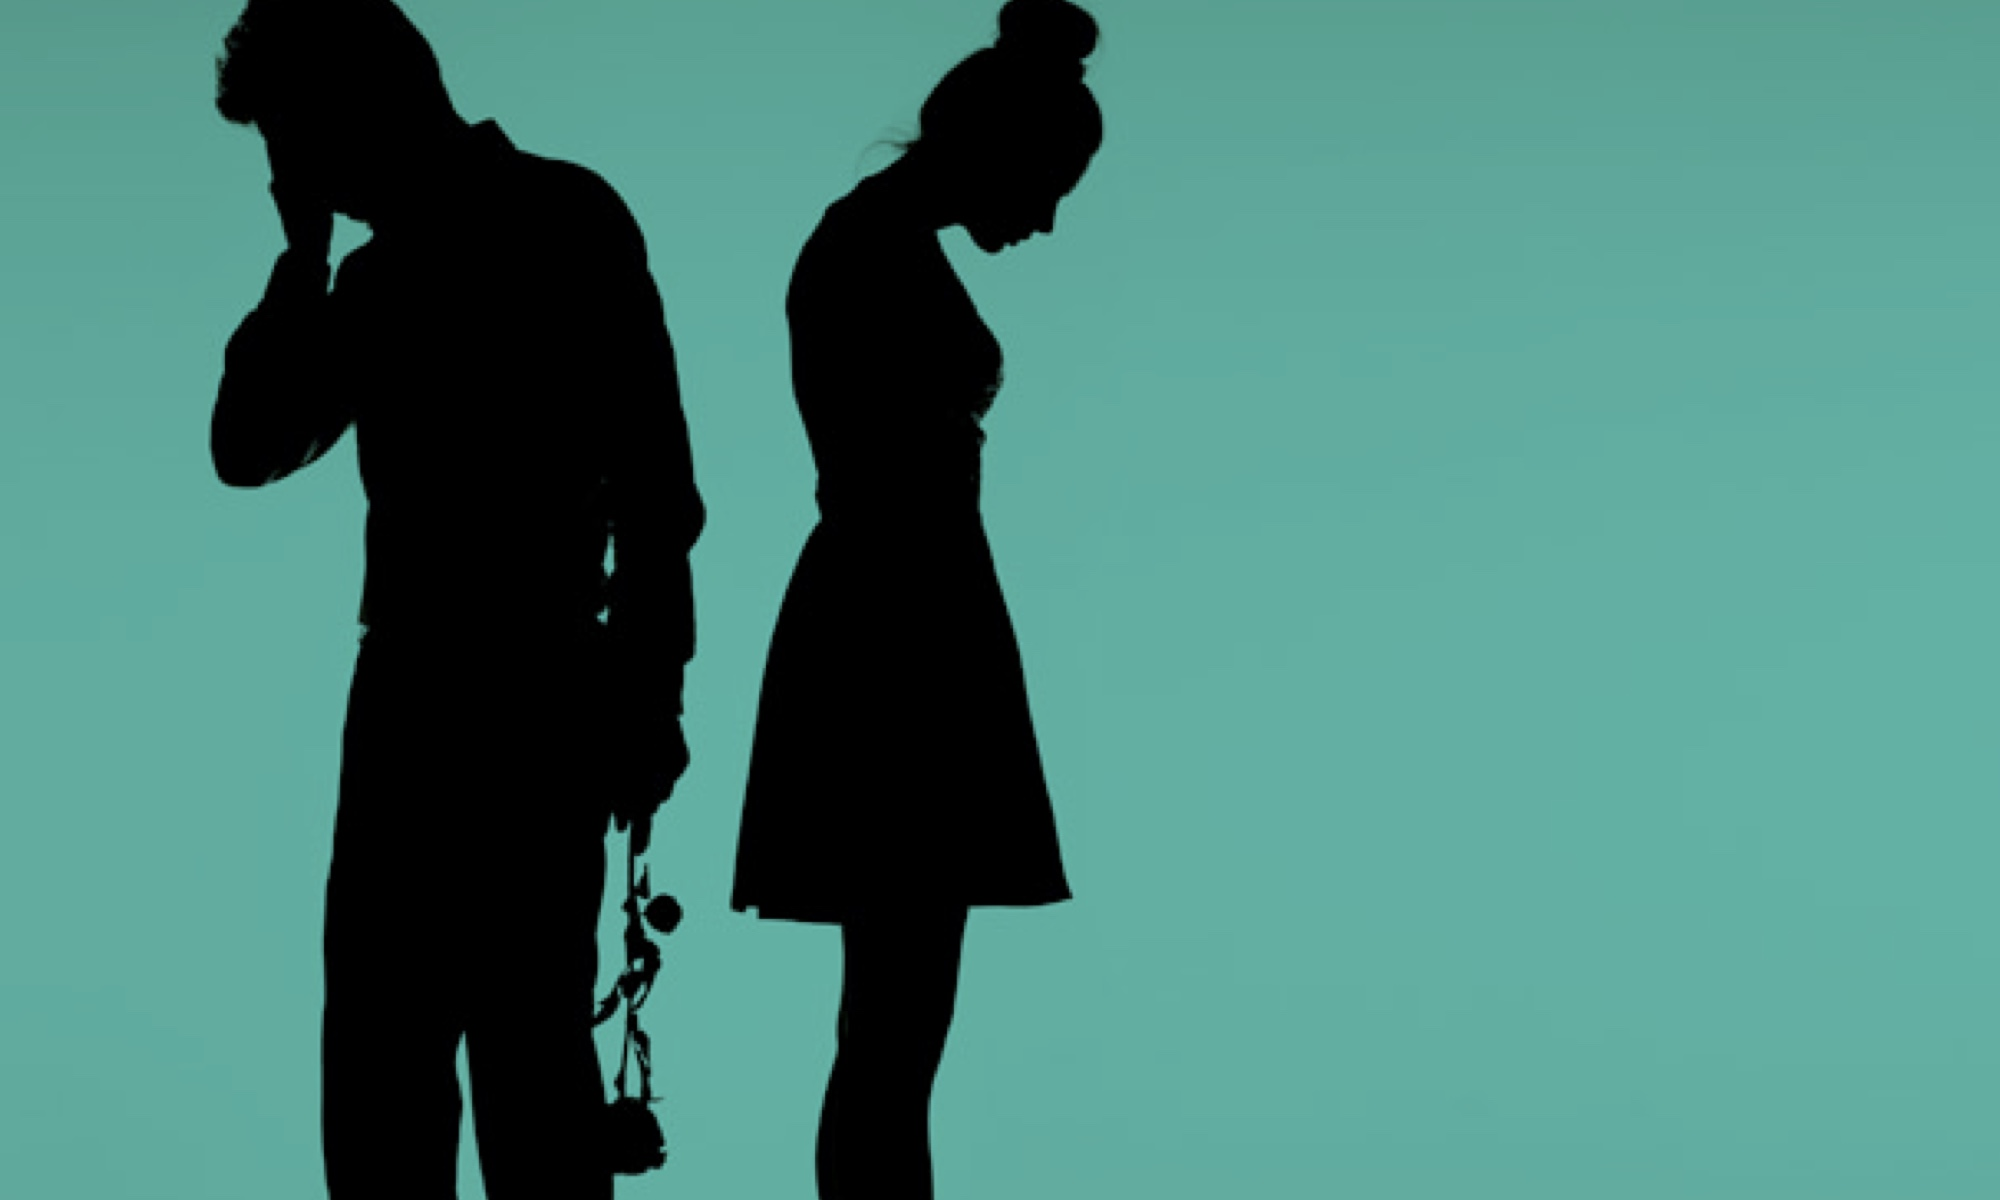 A man/woman couple standing in silhouette, back to back, looking miserable.